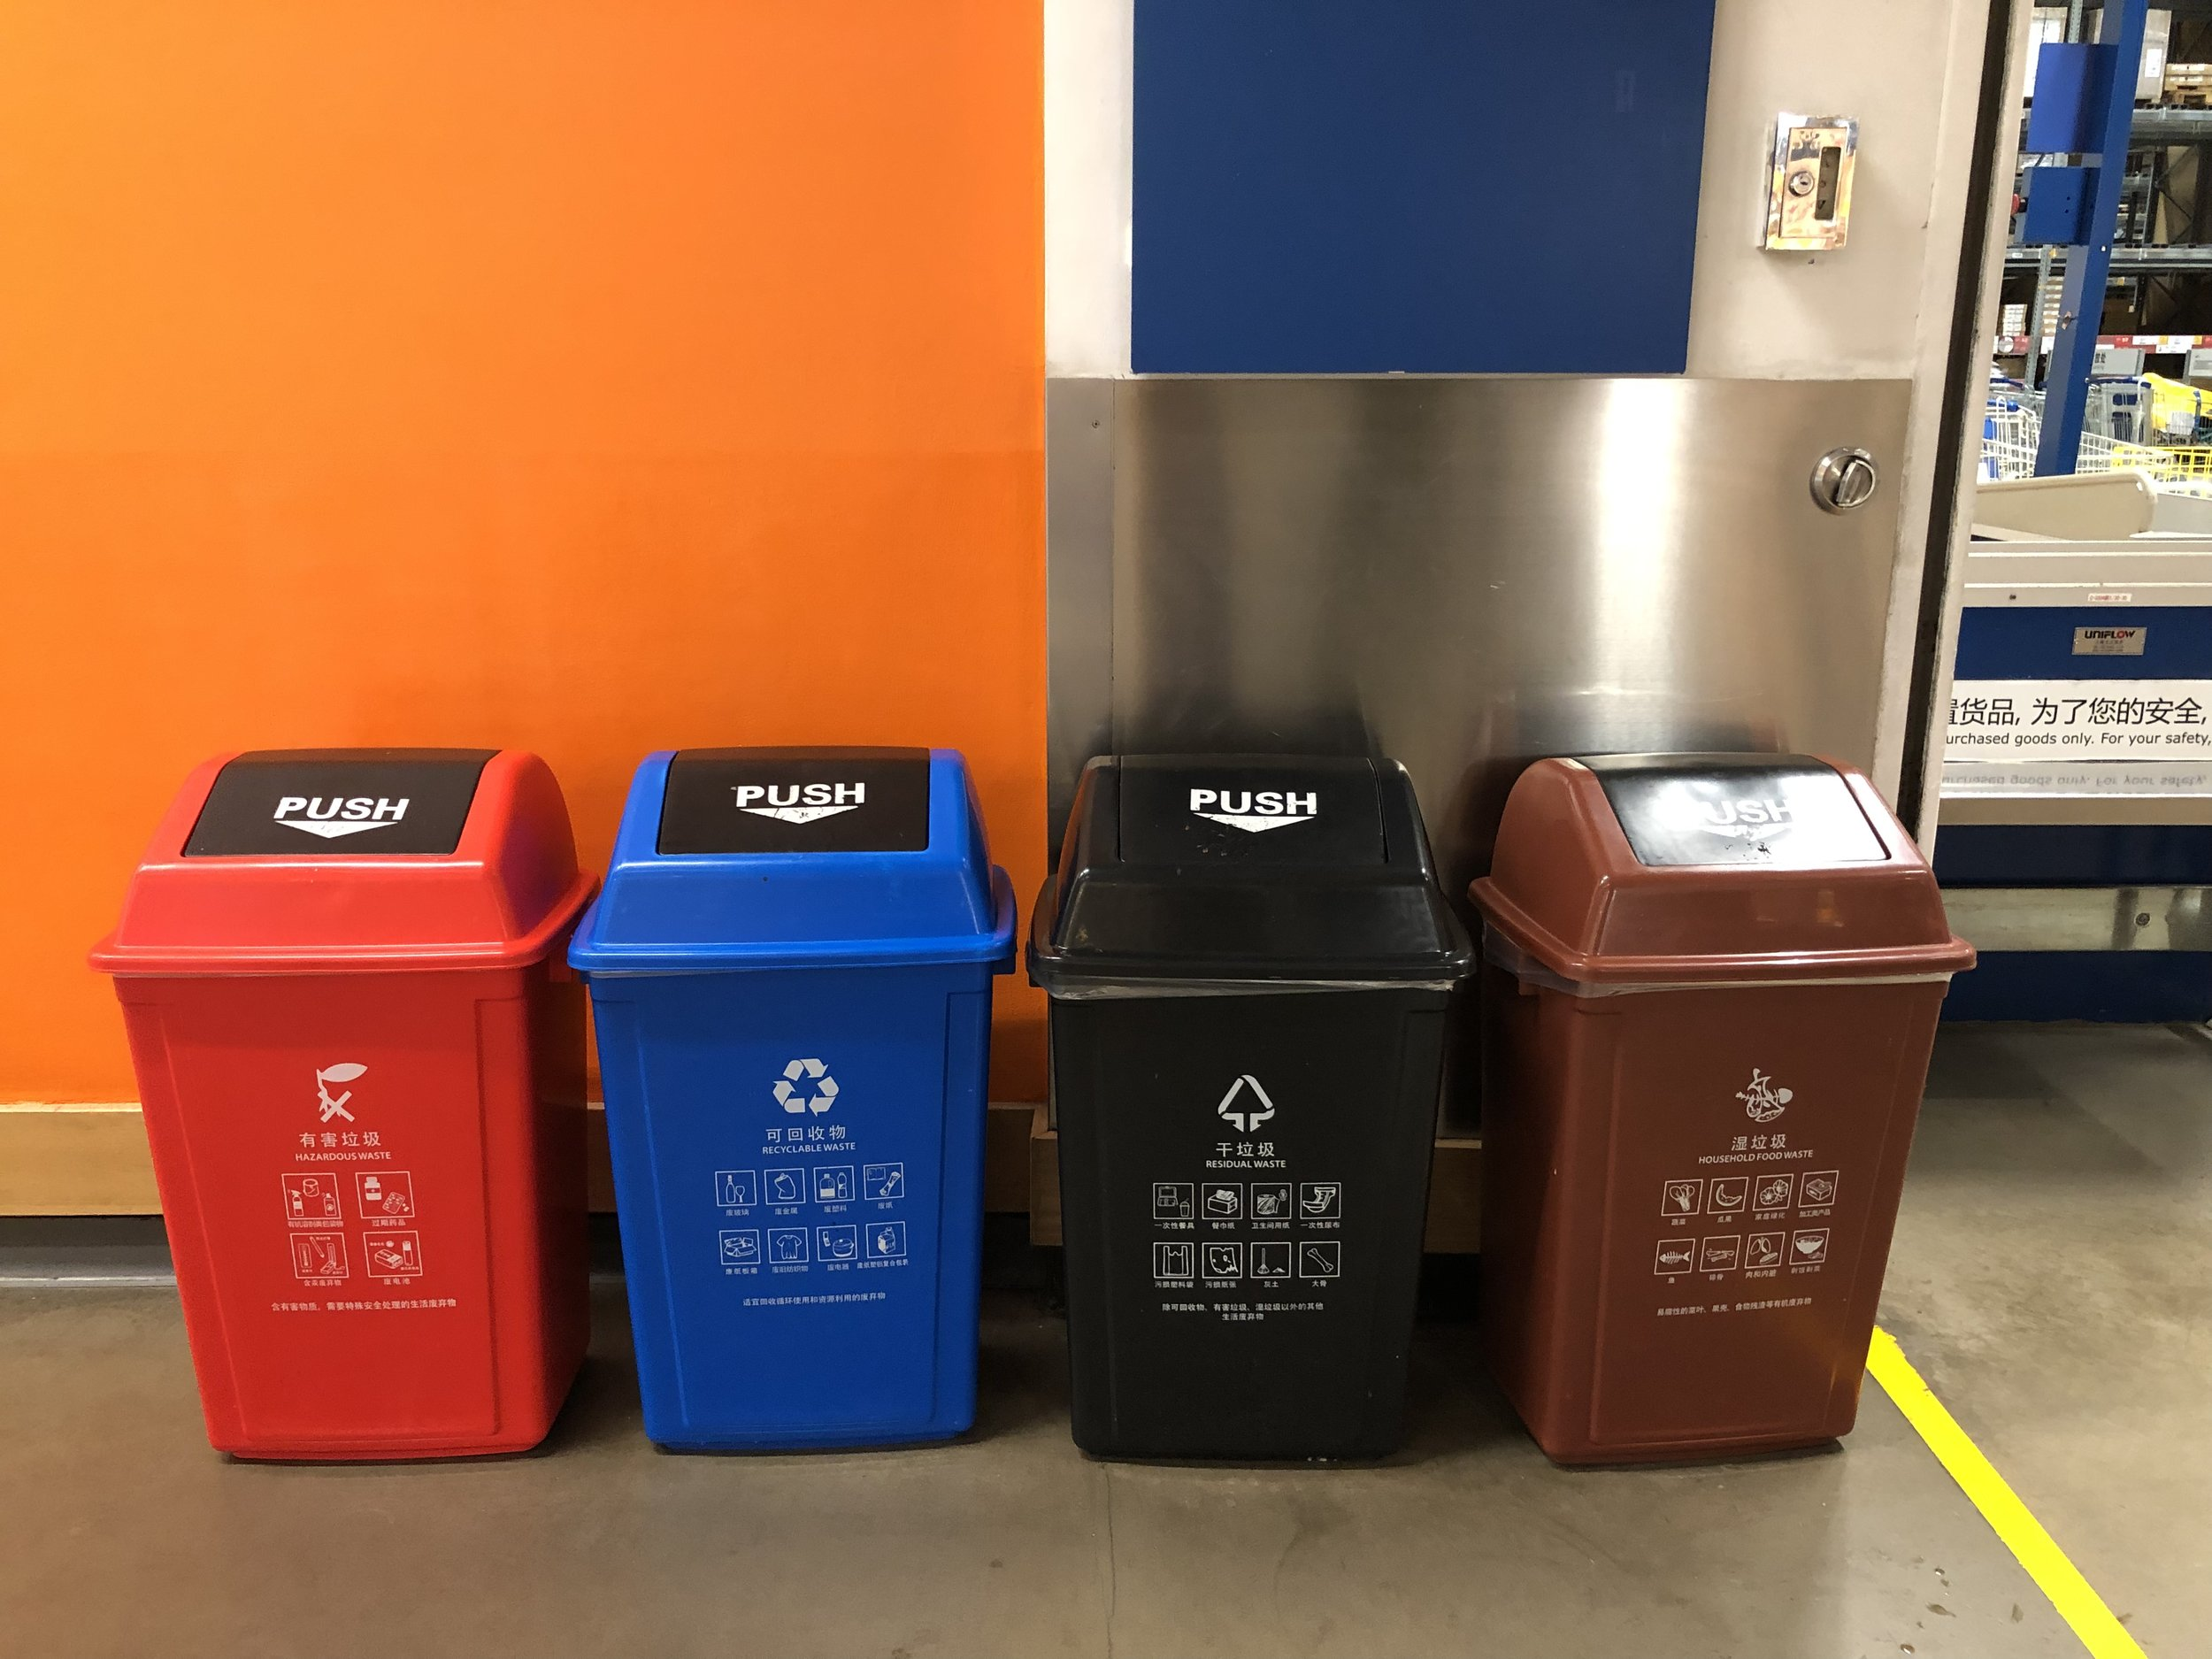 New bins at Ikea today.